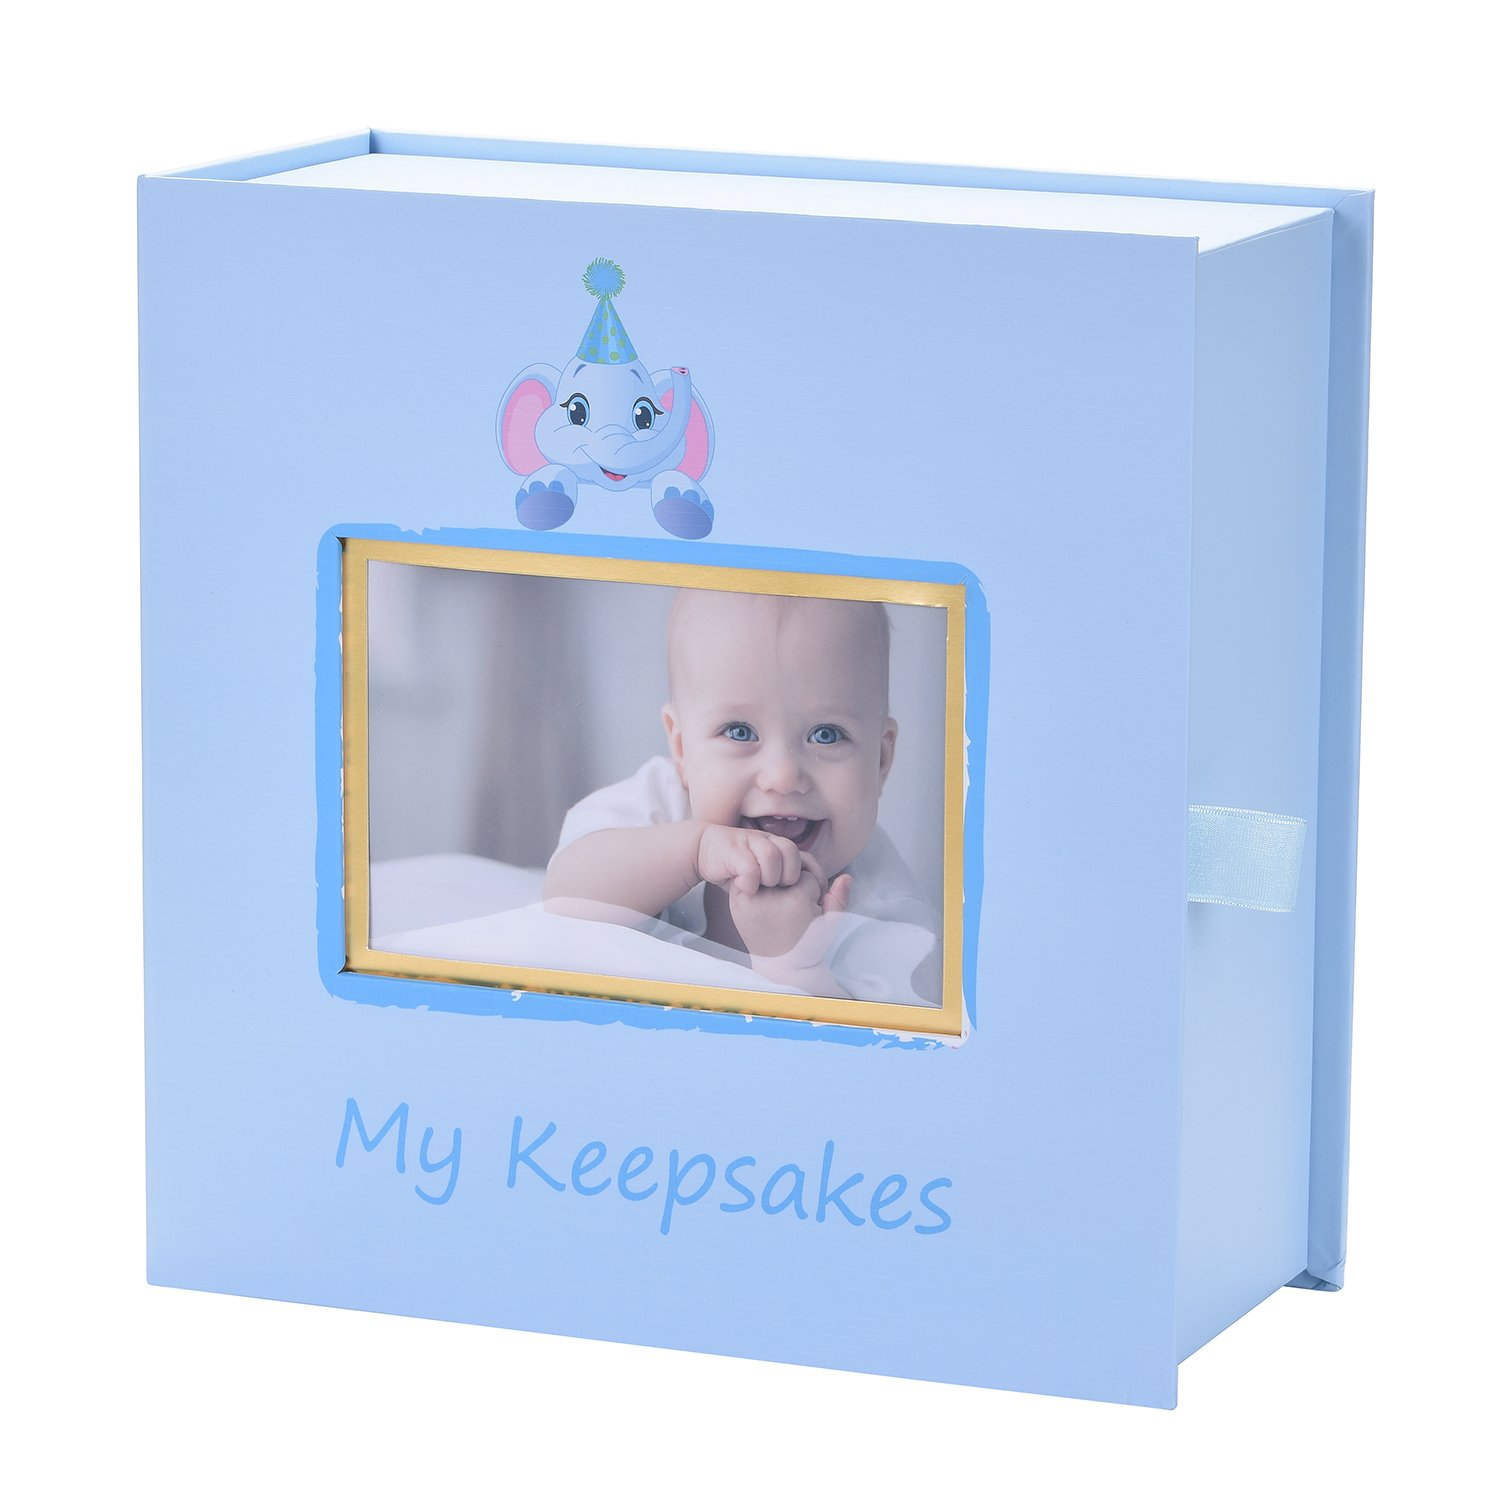 Baby Keepsake Box, First Year Baby Memory Box Set: Record Your Girls or Boys First Mementoes! Babies Keepsake Journal box, Gift Box for Newborn Boy or Girl by BBX (Image #2)